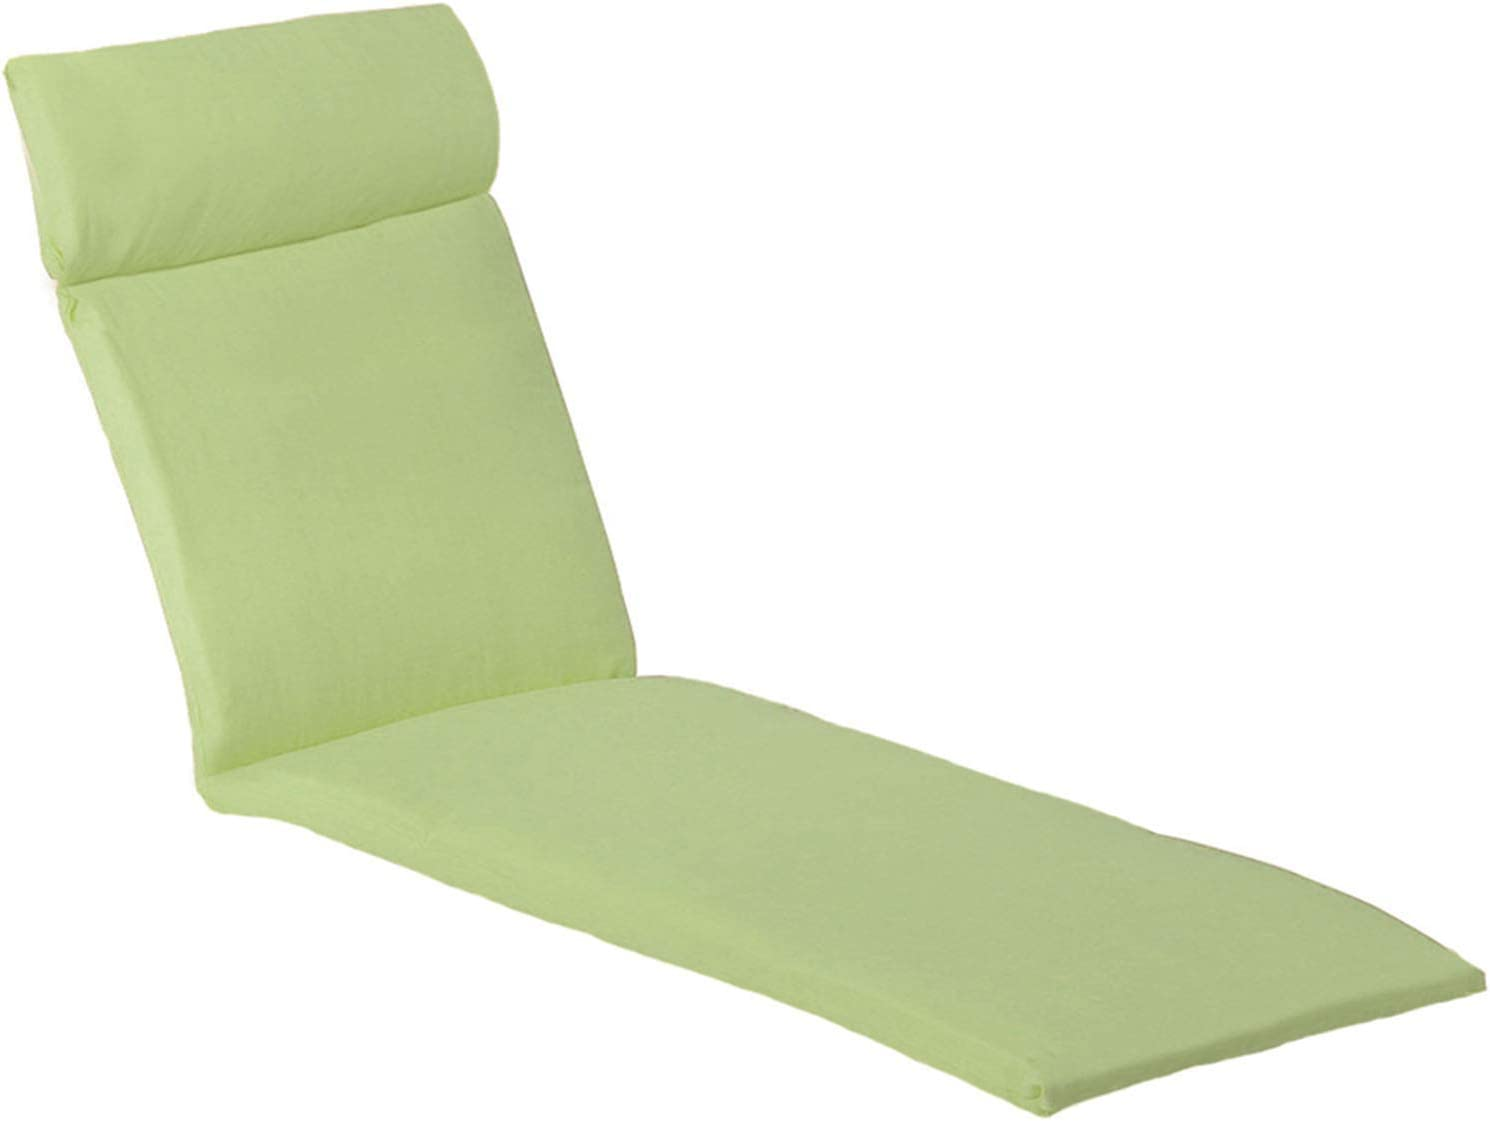 Hanover Outdoor Furniture ORLEANSCHSCUSH Orleans Chaise Lounge Cushion, Avocado Green Outdoor Furniture